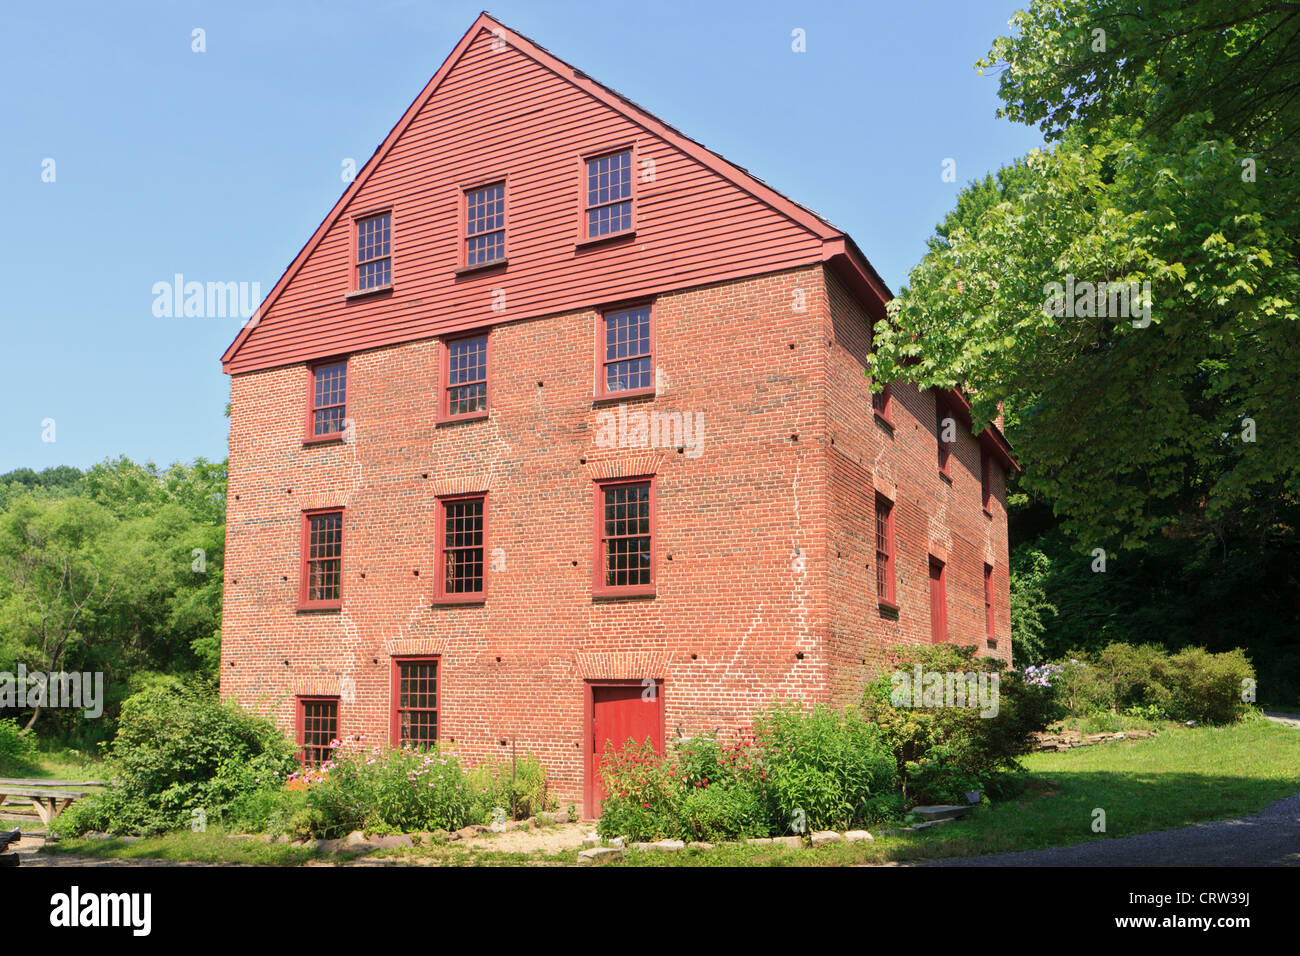 Colvin Run Mill Historic Site, a water-powered gristmill, built about 1805, Great Falls, Virginia, Fairfax County Stock Photo